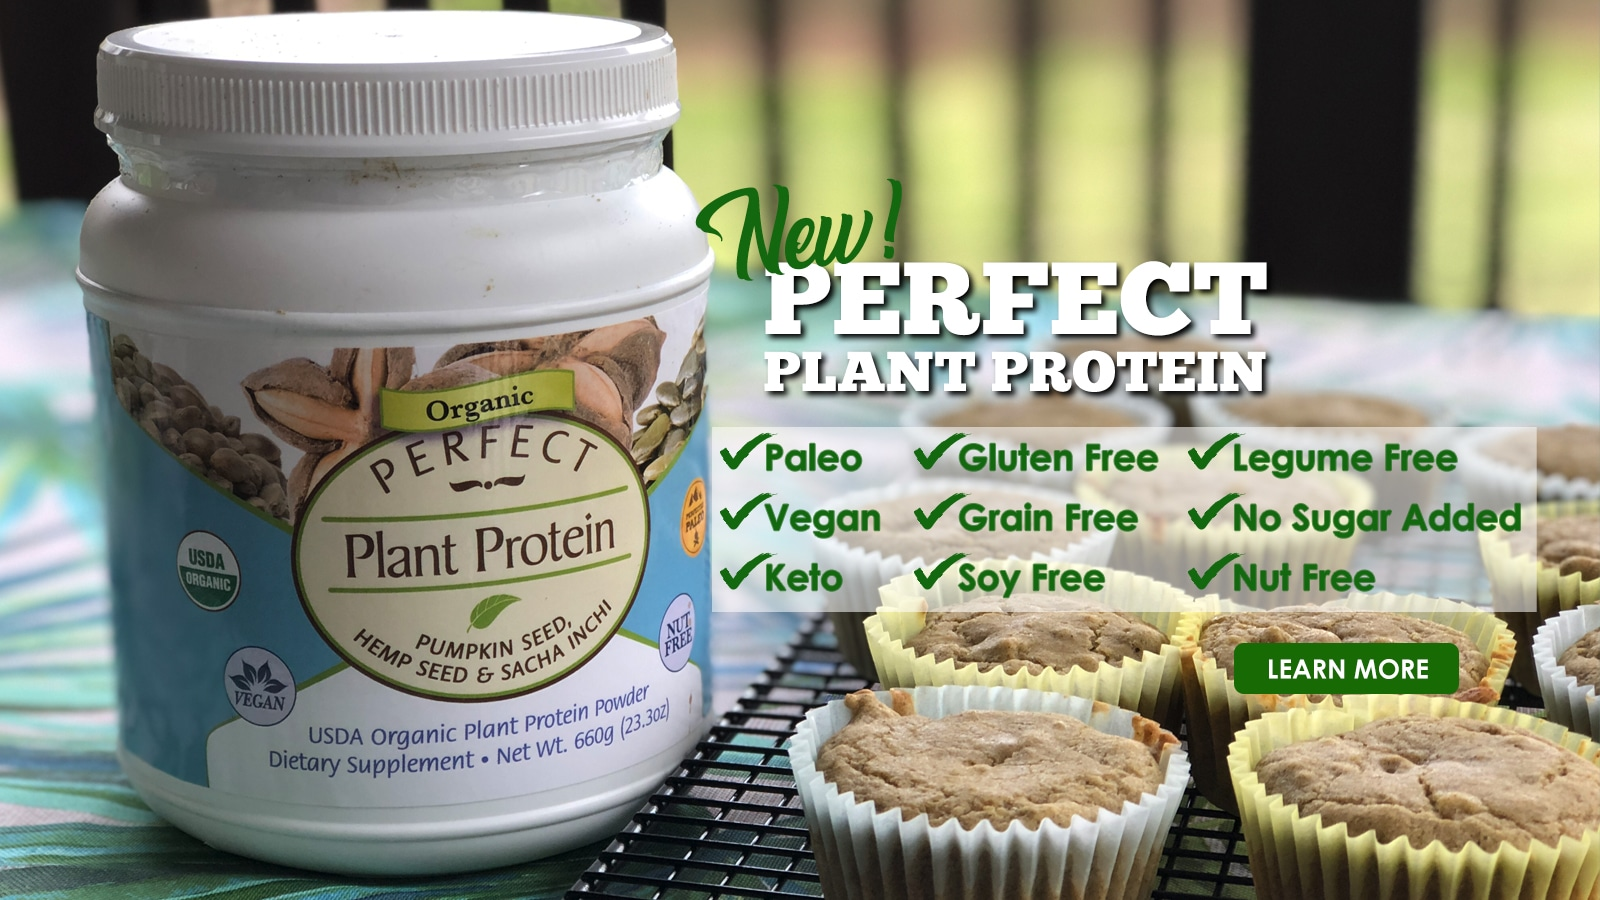 natural supplement l herbal supplement l plant protein l plant based protein powder